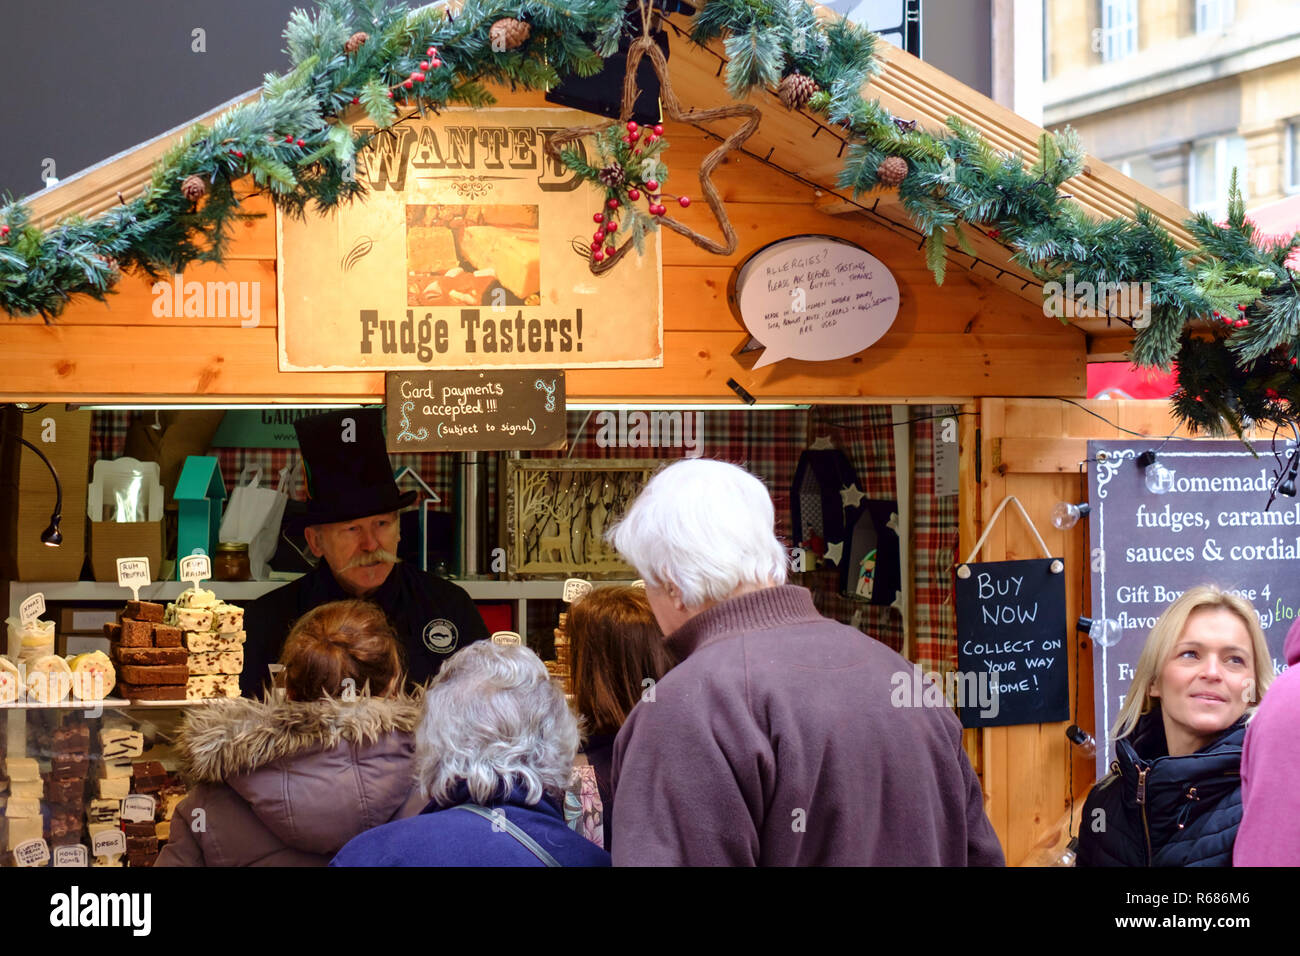 Bath, Somerset, UK. 4th Dec 2018. Pictures of a busy mid week crowd of shoppers at Bath's Christmas Market. The 2018 market is the biggest hosted by the city of Bath. As well as the Abbey courtyard and narrow streets surrounding the Roman Baths, this year Milsom Street has also been set aside for market stalls. The market closes on 9th December, the organisers may consider an extension of the license for a further week in 2019. Credit: Mr Standfast/Alamy Live News - Stock Image